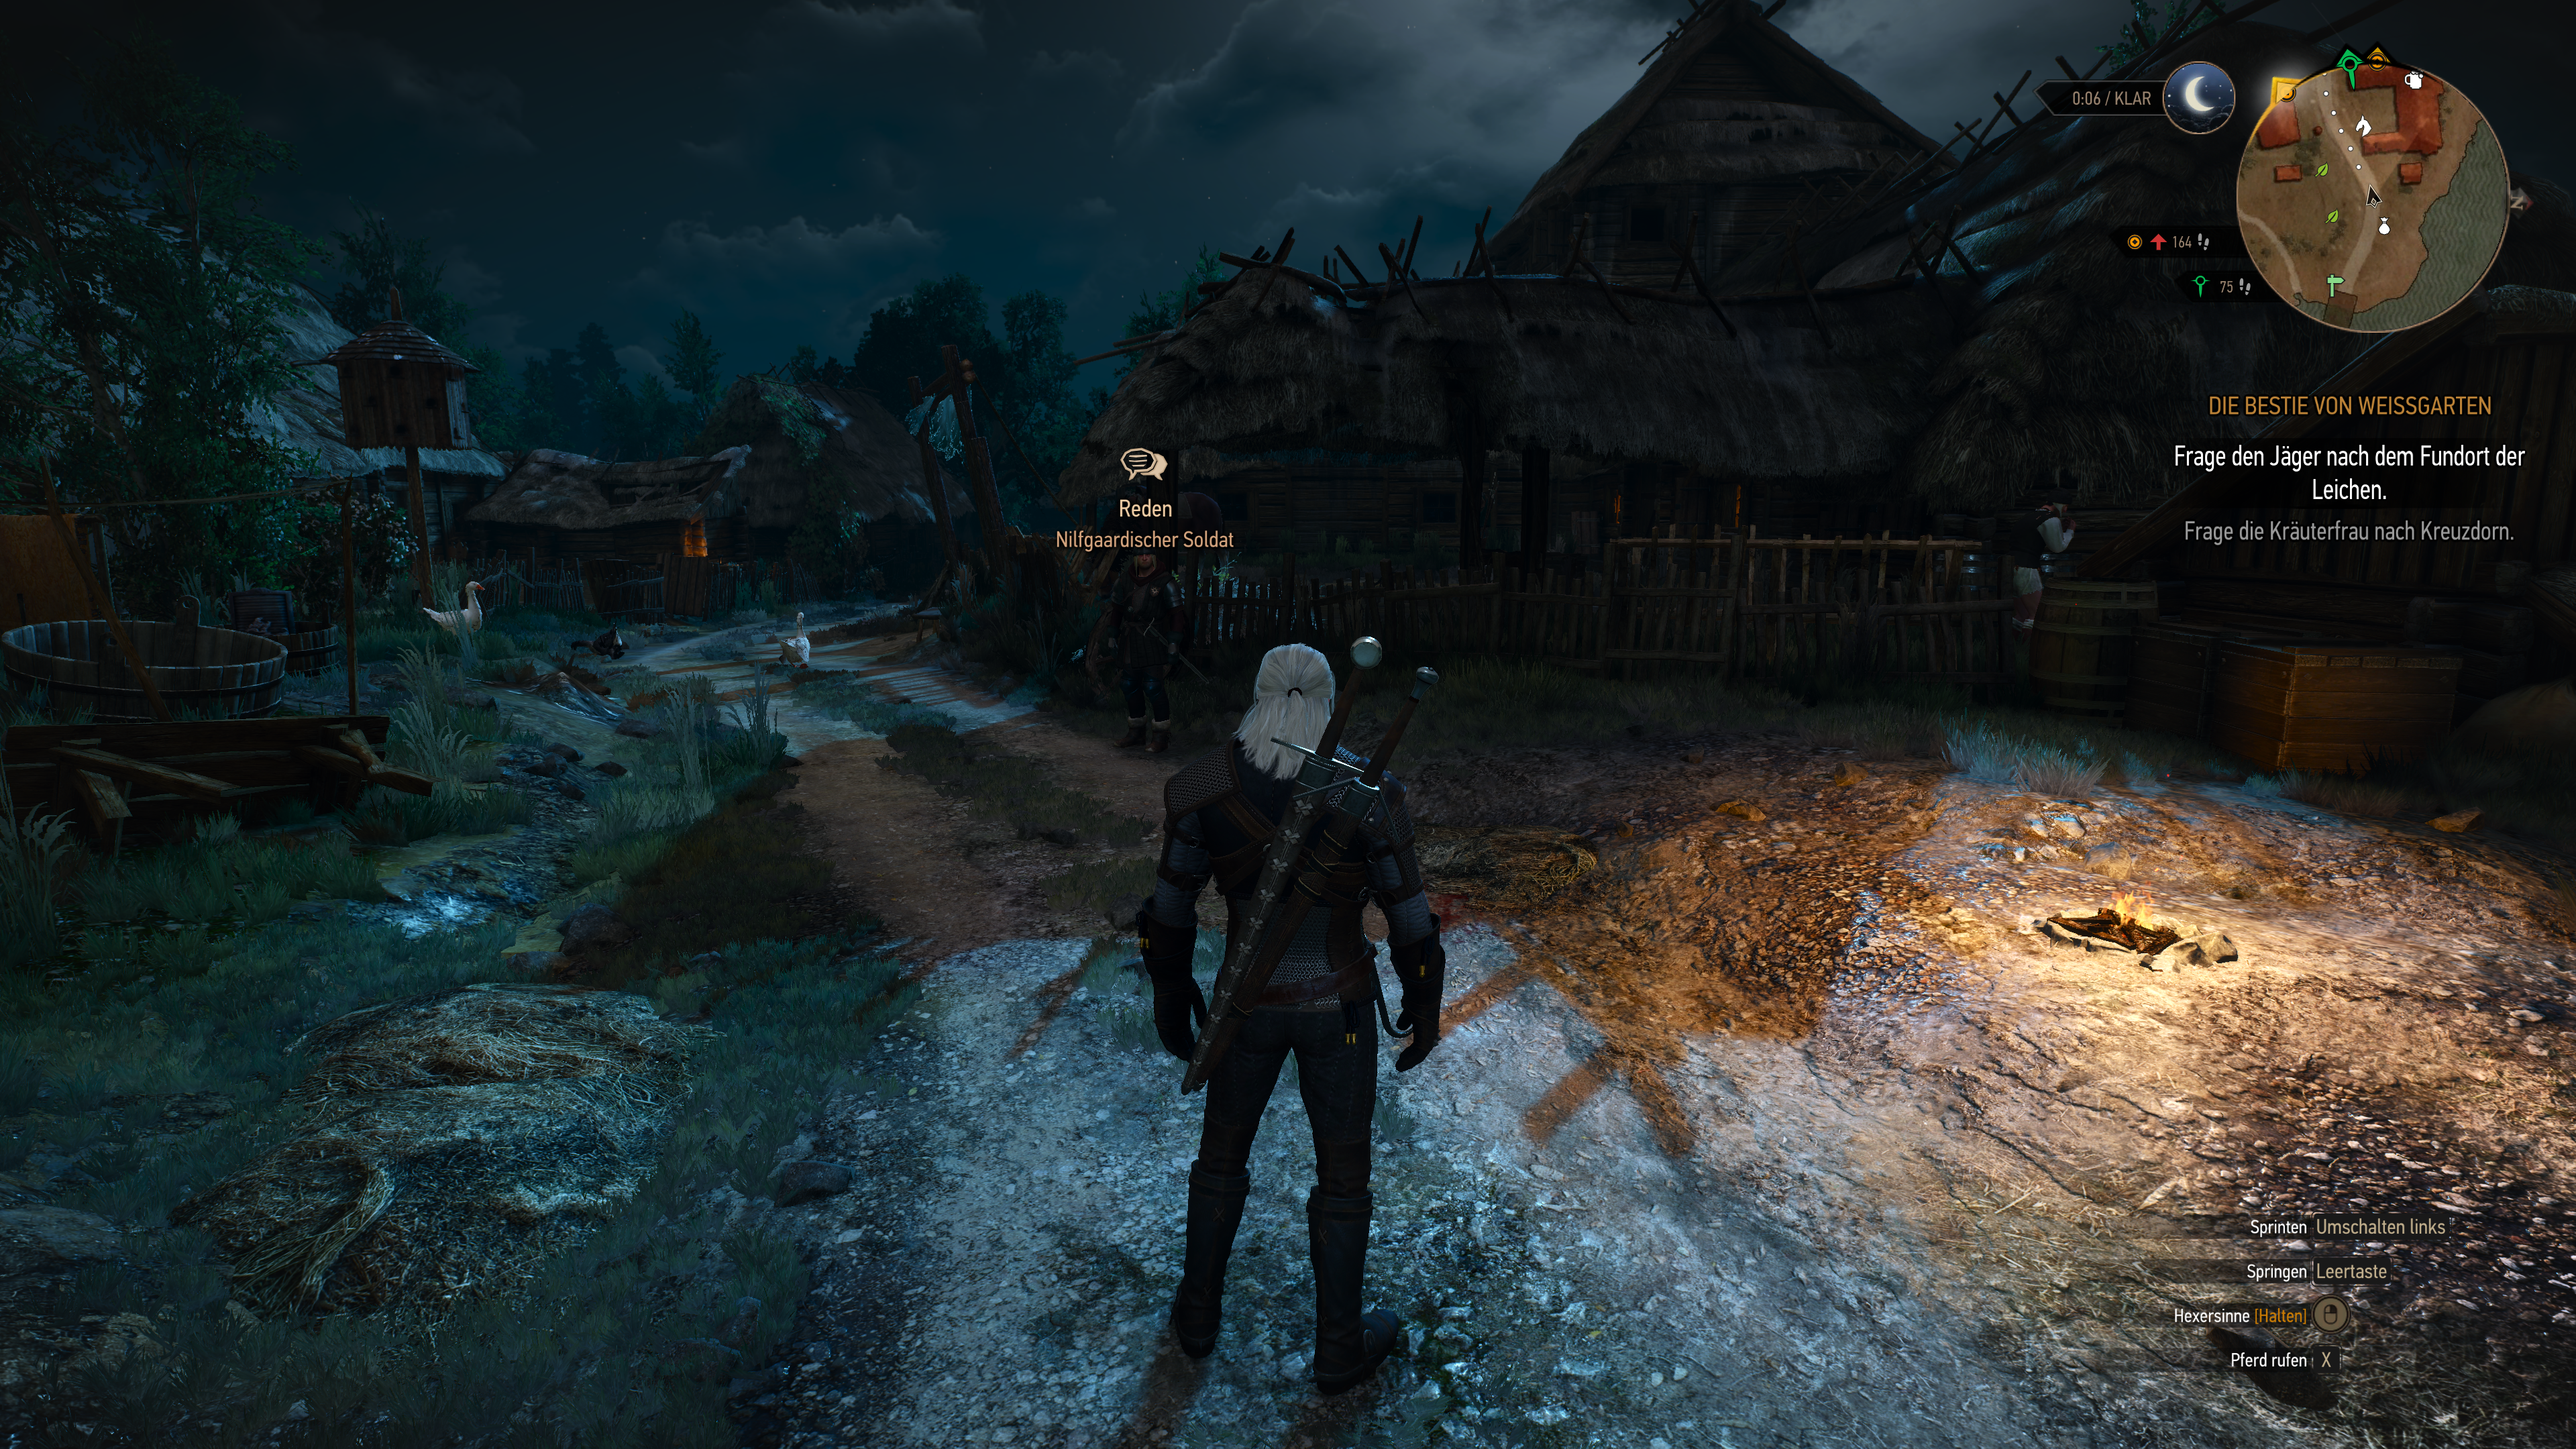 witcher3-2015-05-19-18-12-08.png